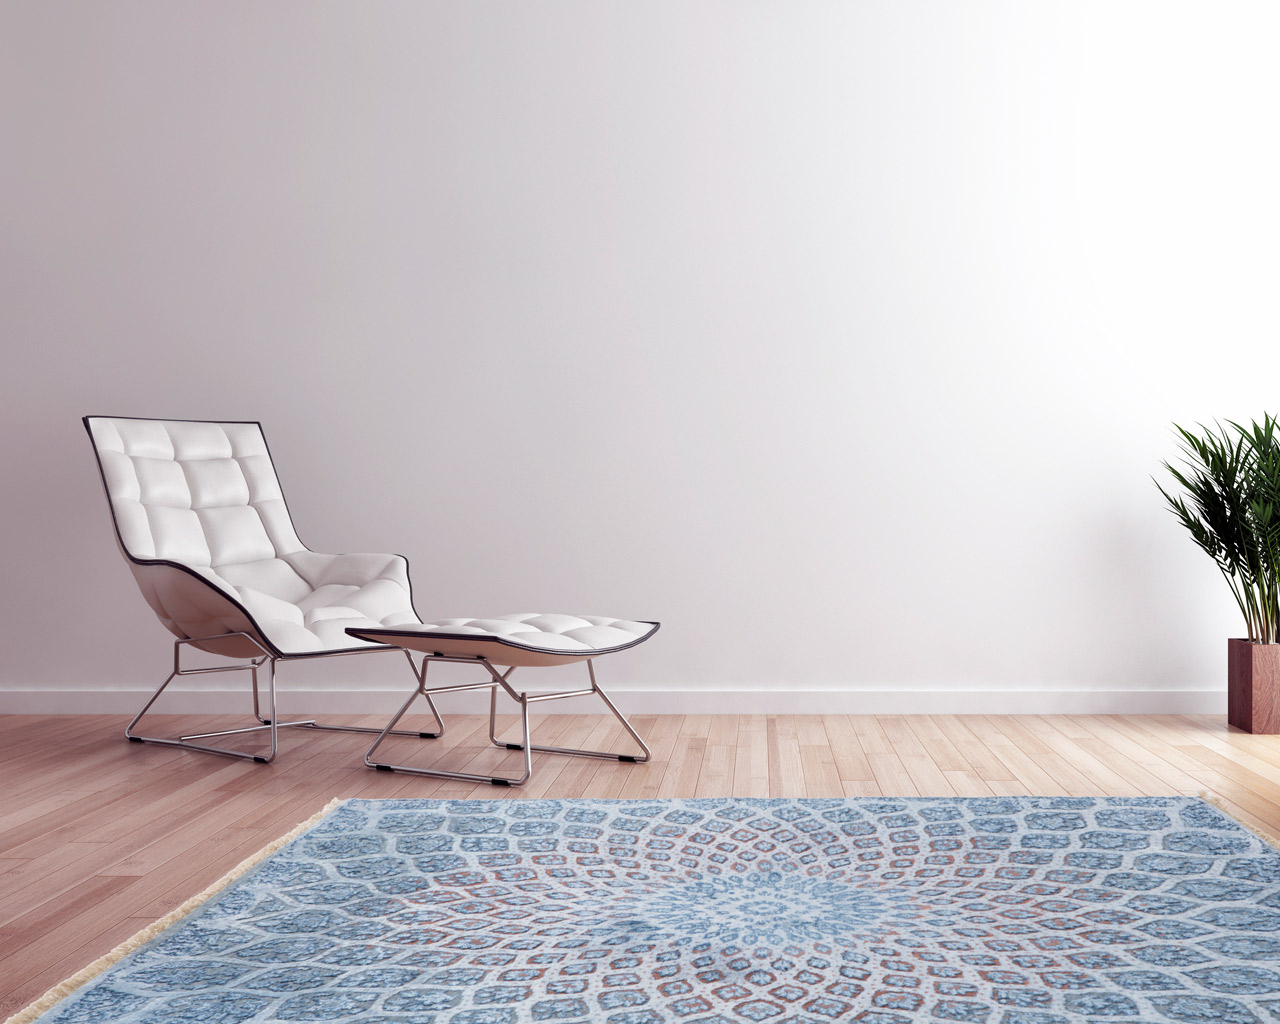 trendy hand knotted rug stylish chair table